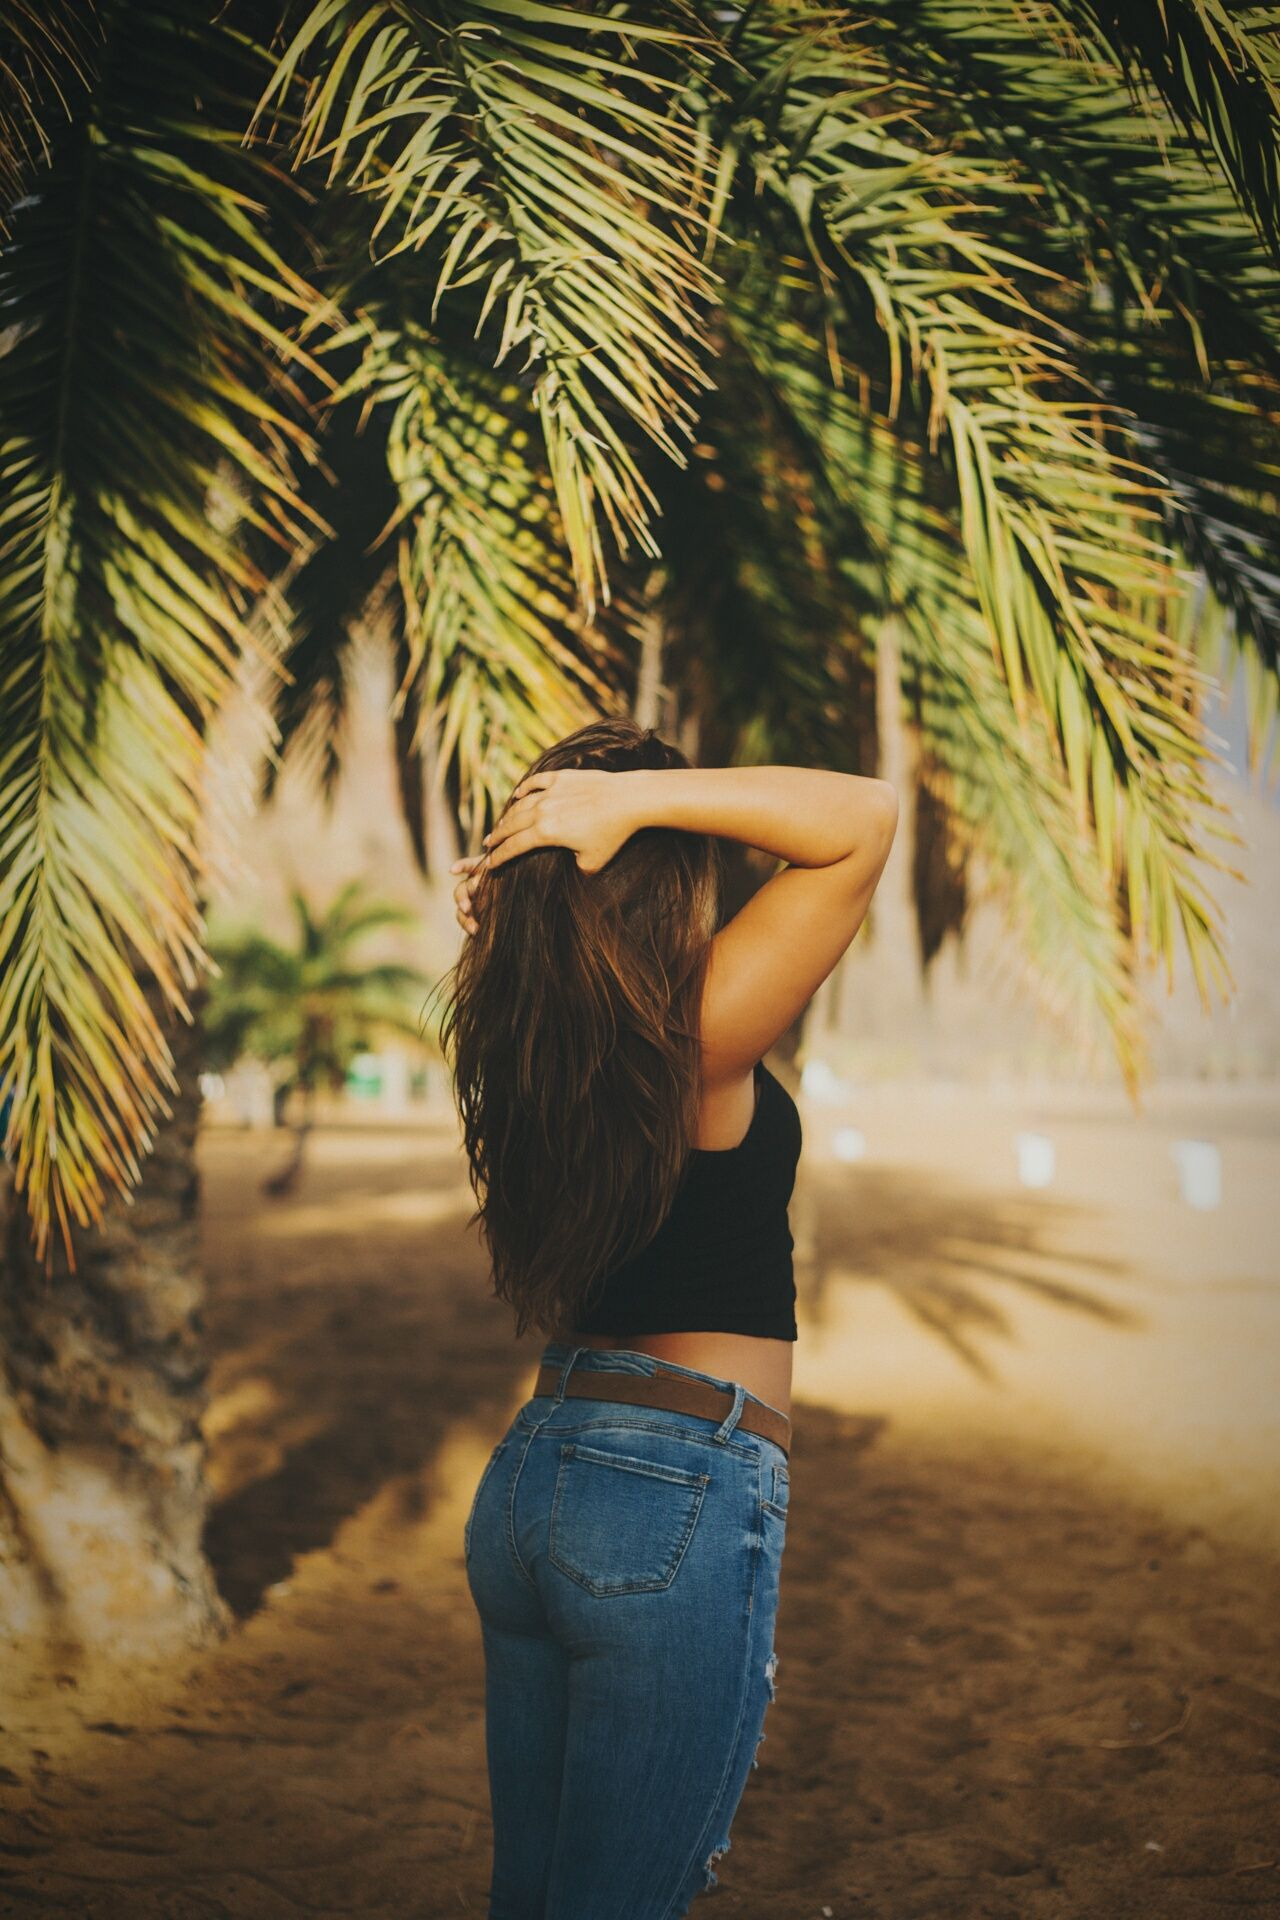 G I R L F R I E N D • TENERIFE • 2016 Palm Tree Child Sunset Back Human Body Part Outdoors Vacations Rear View Summer Beach Human Back People One Person Women Young Adult Day Nature One Young Woman Only Canary Islands Canarias Artphotography Beautiful People Tree Adult Human Hand